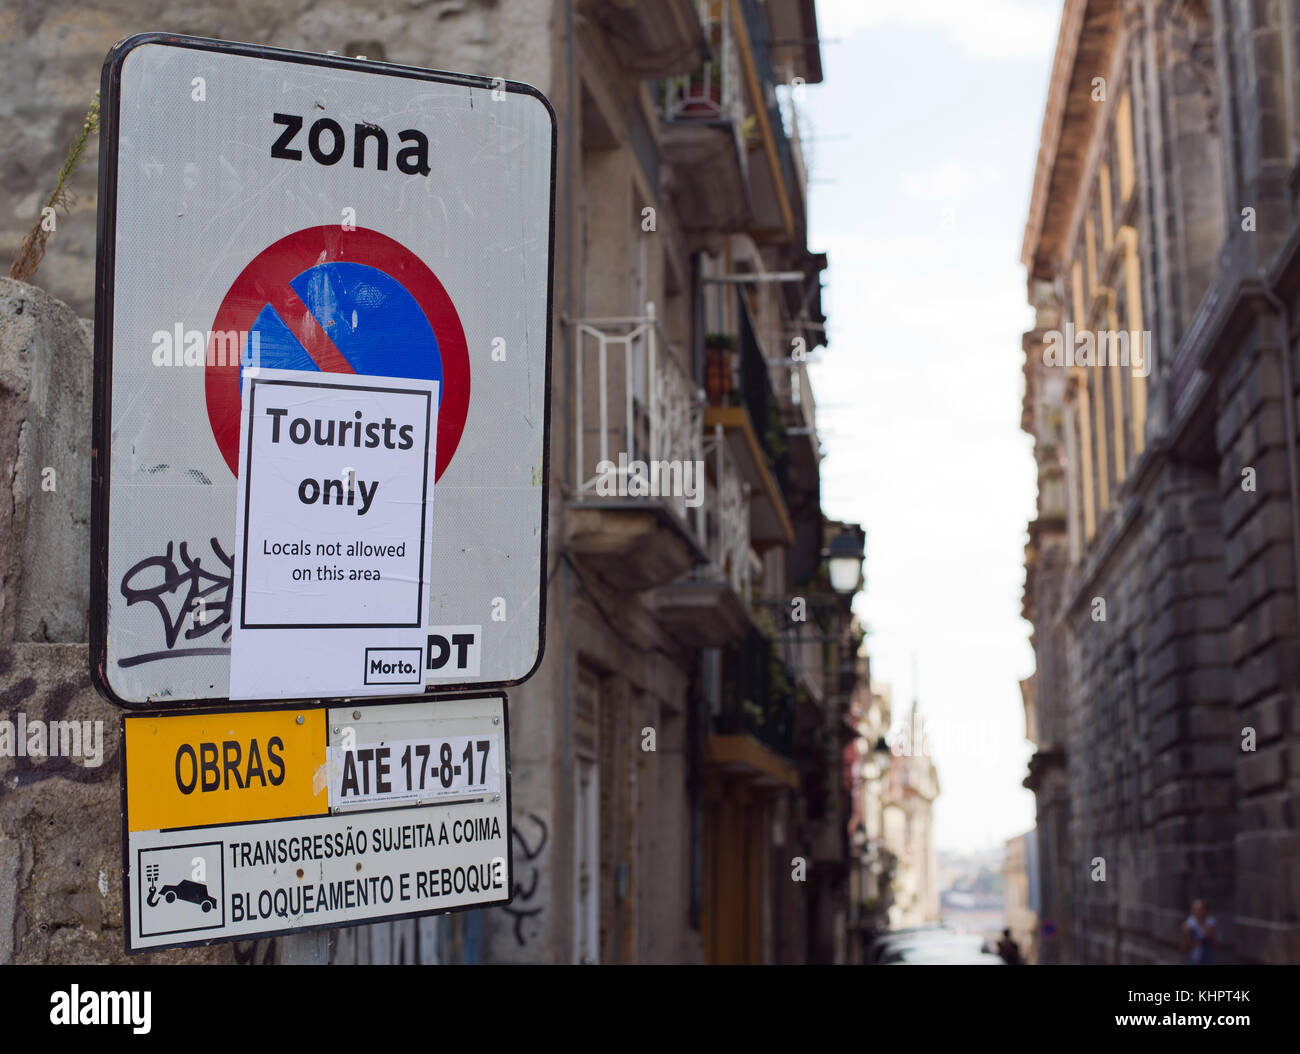 Road signs and protest posters on the street of R. de São Bento da Vitória in the historical old town - Stock Image